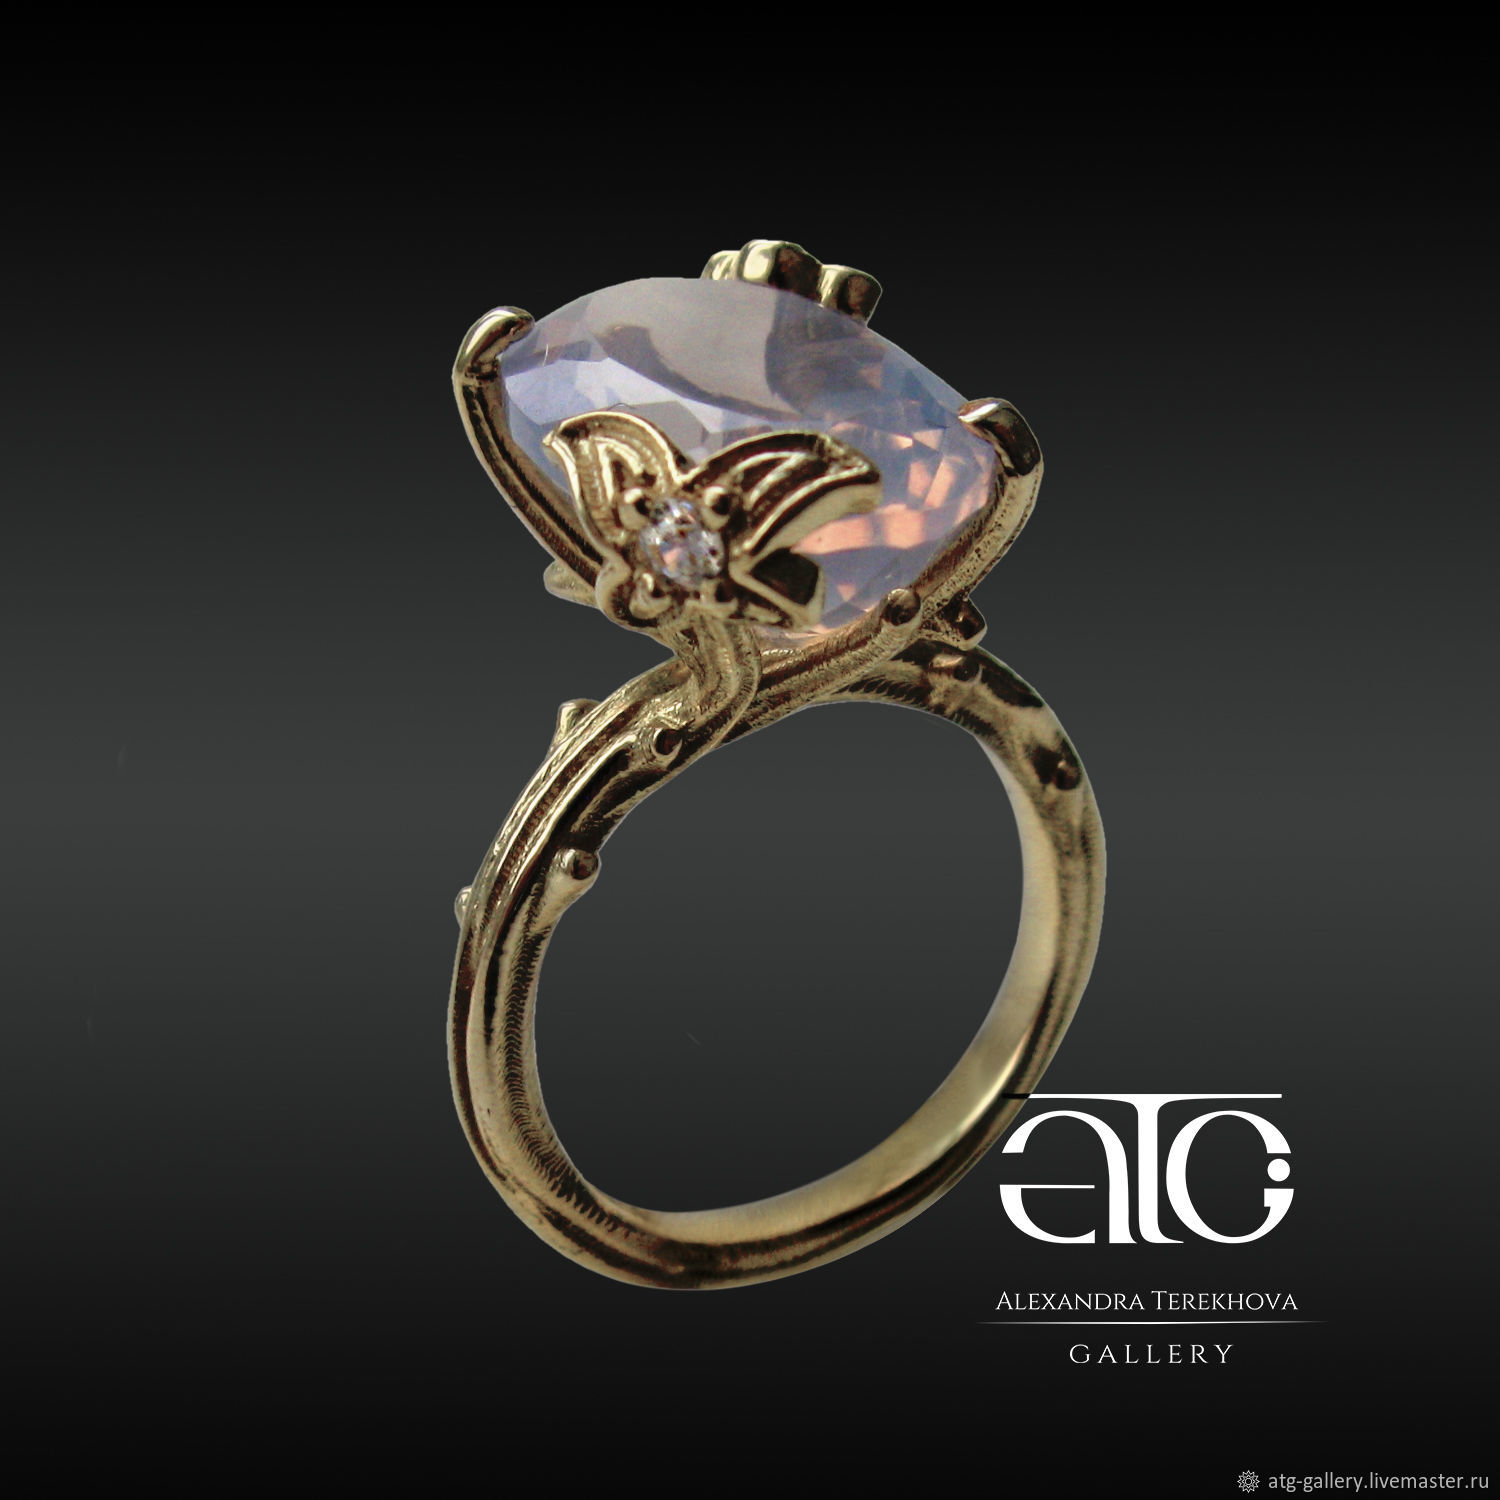 Very beautiful ring with luxurious opalescent amethyst!